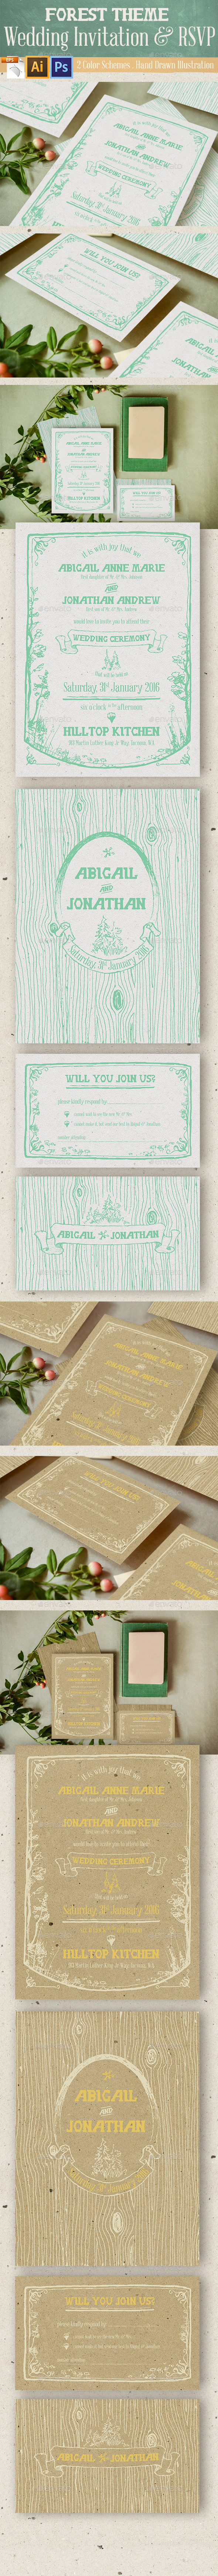 Forest Theme Wedding Invitation